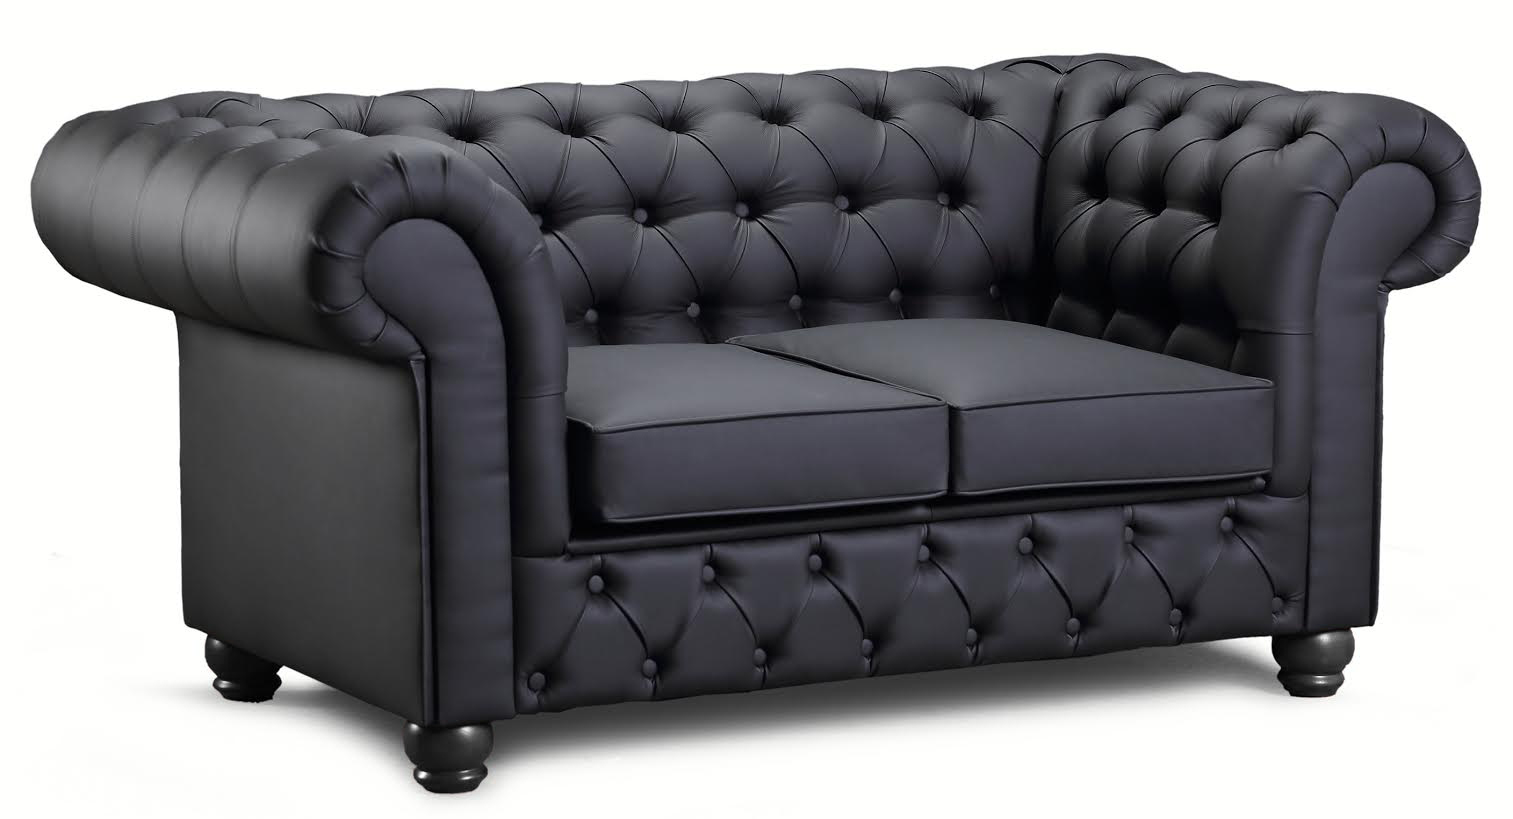 Chesterfield New England 2-sits soffa i tyg